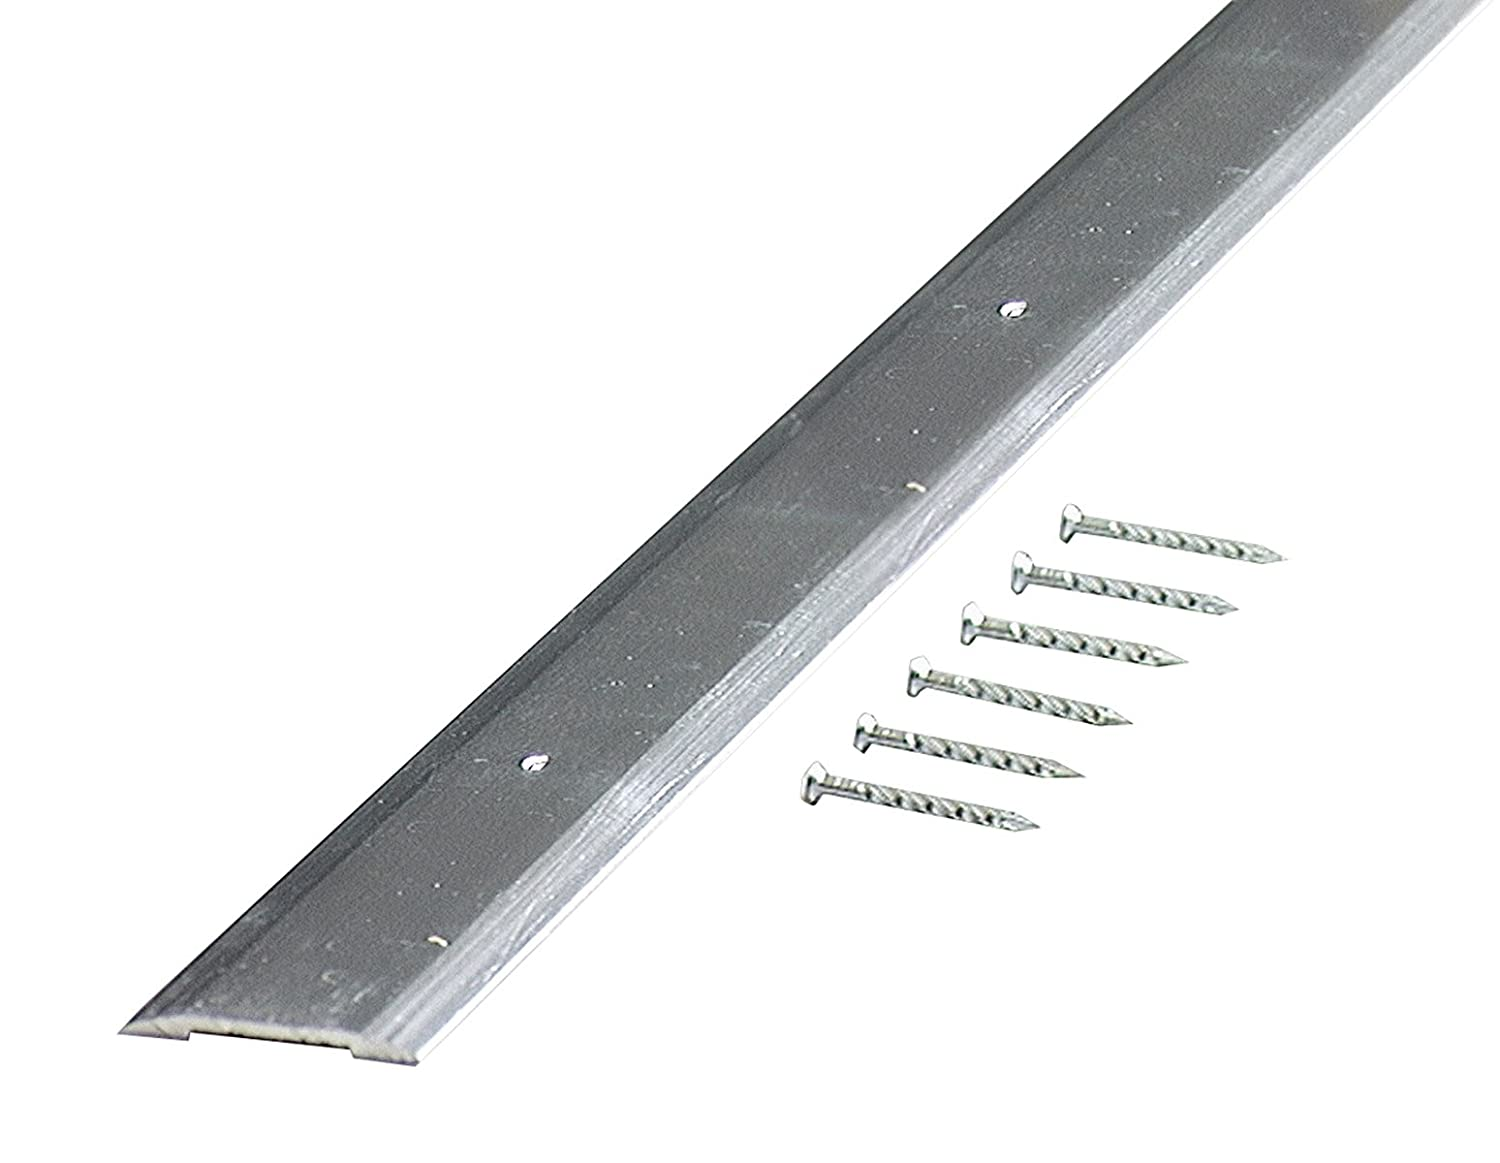 M-D Building Products 66019 M-D Smooth Seam Binder, 36 in L X 1-1/4 in W, Aluminum, quot quot, Polished